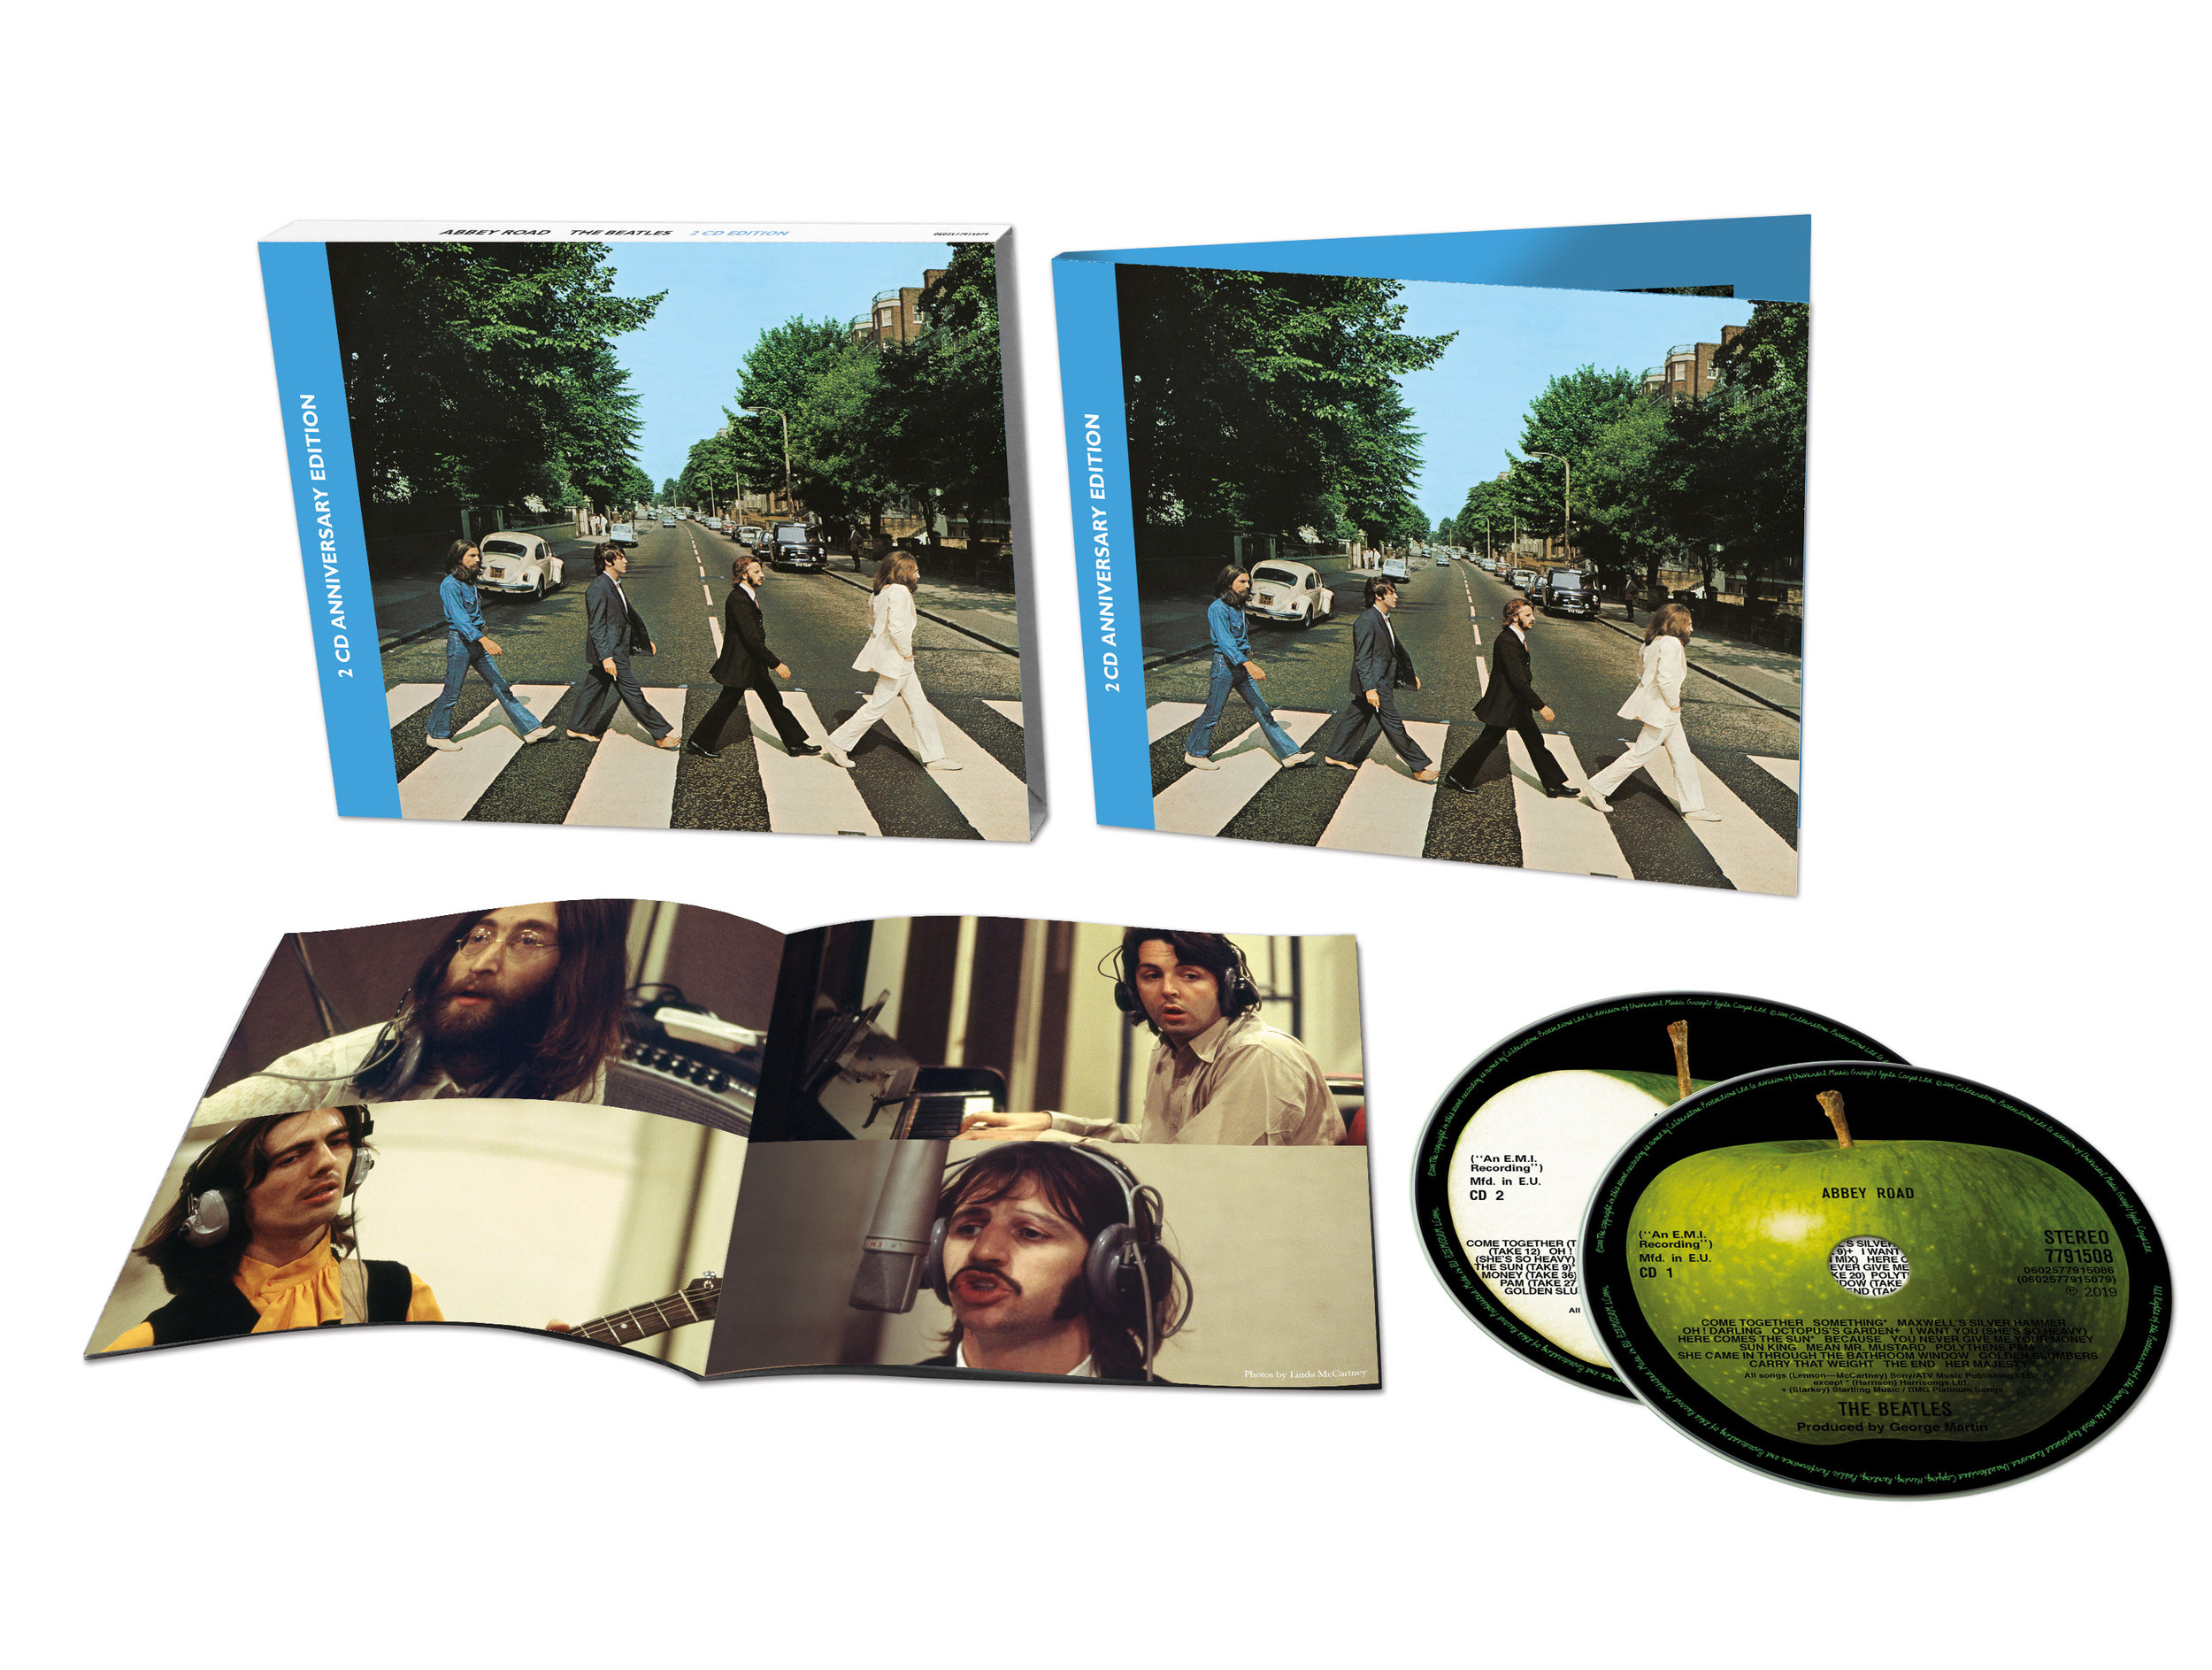 2 CD Anniversary edition of The Beatles' Abbey Road.